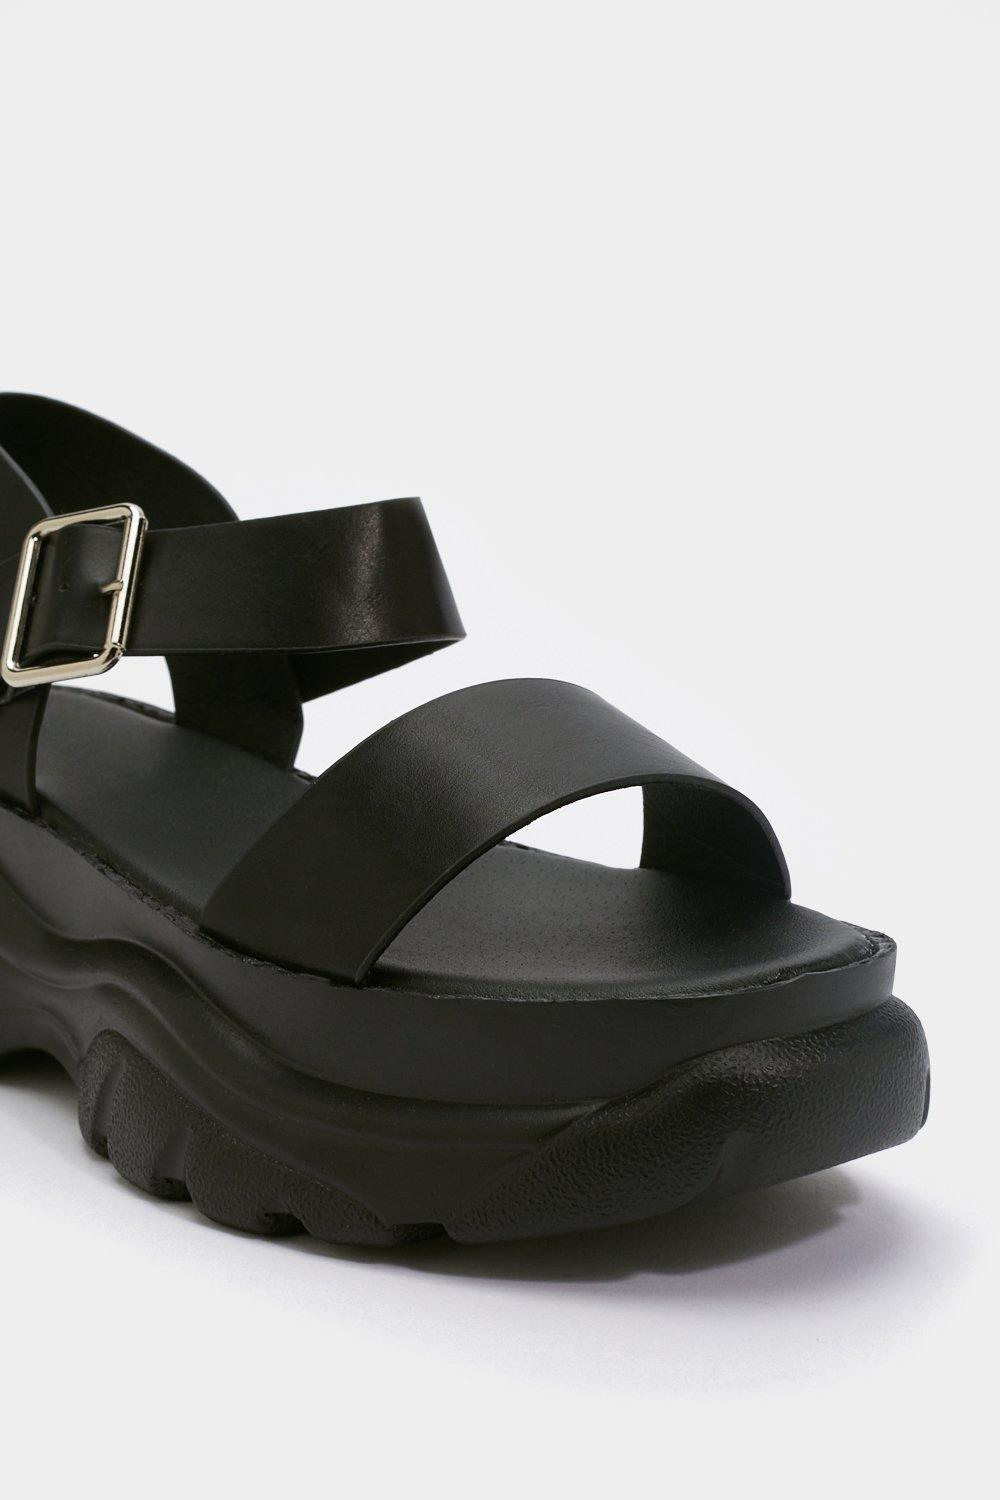 Womens Black Strappy and You Know It Chunky Platform Sandals.